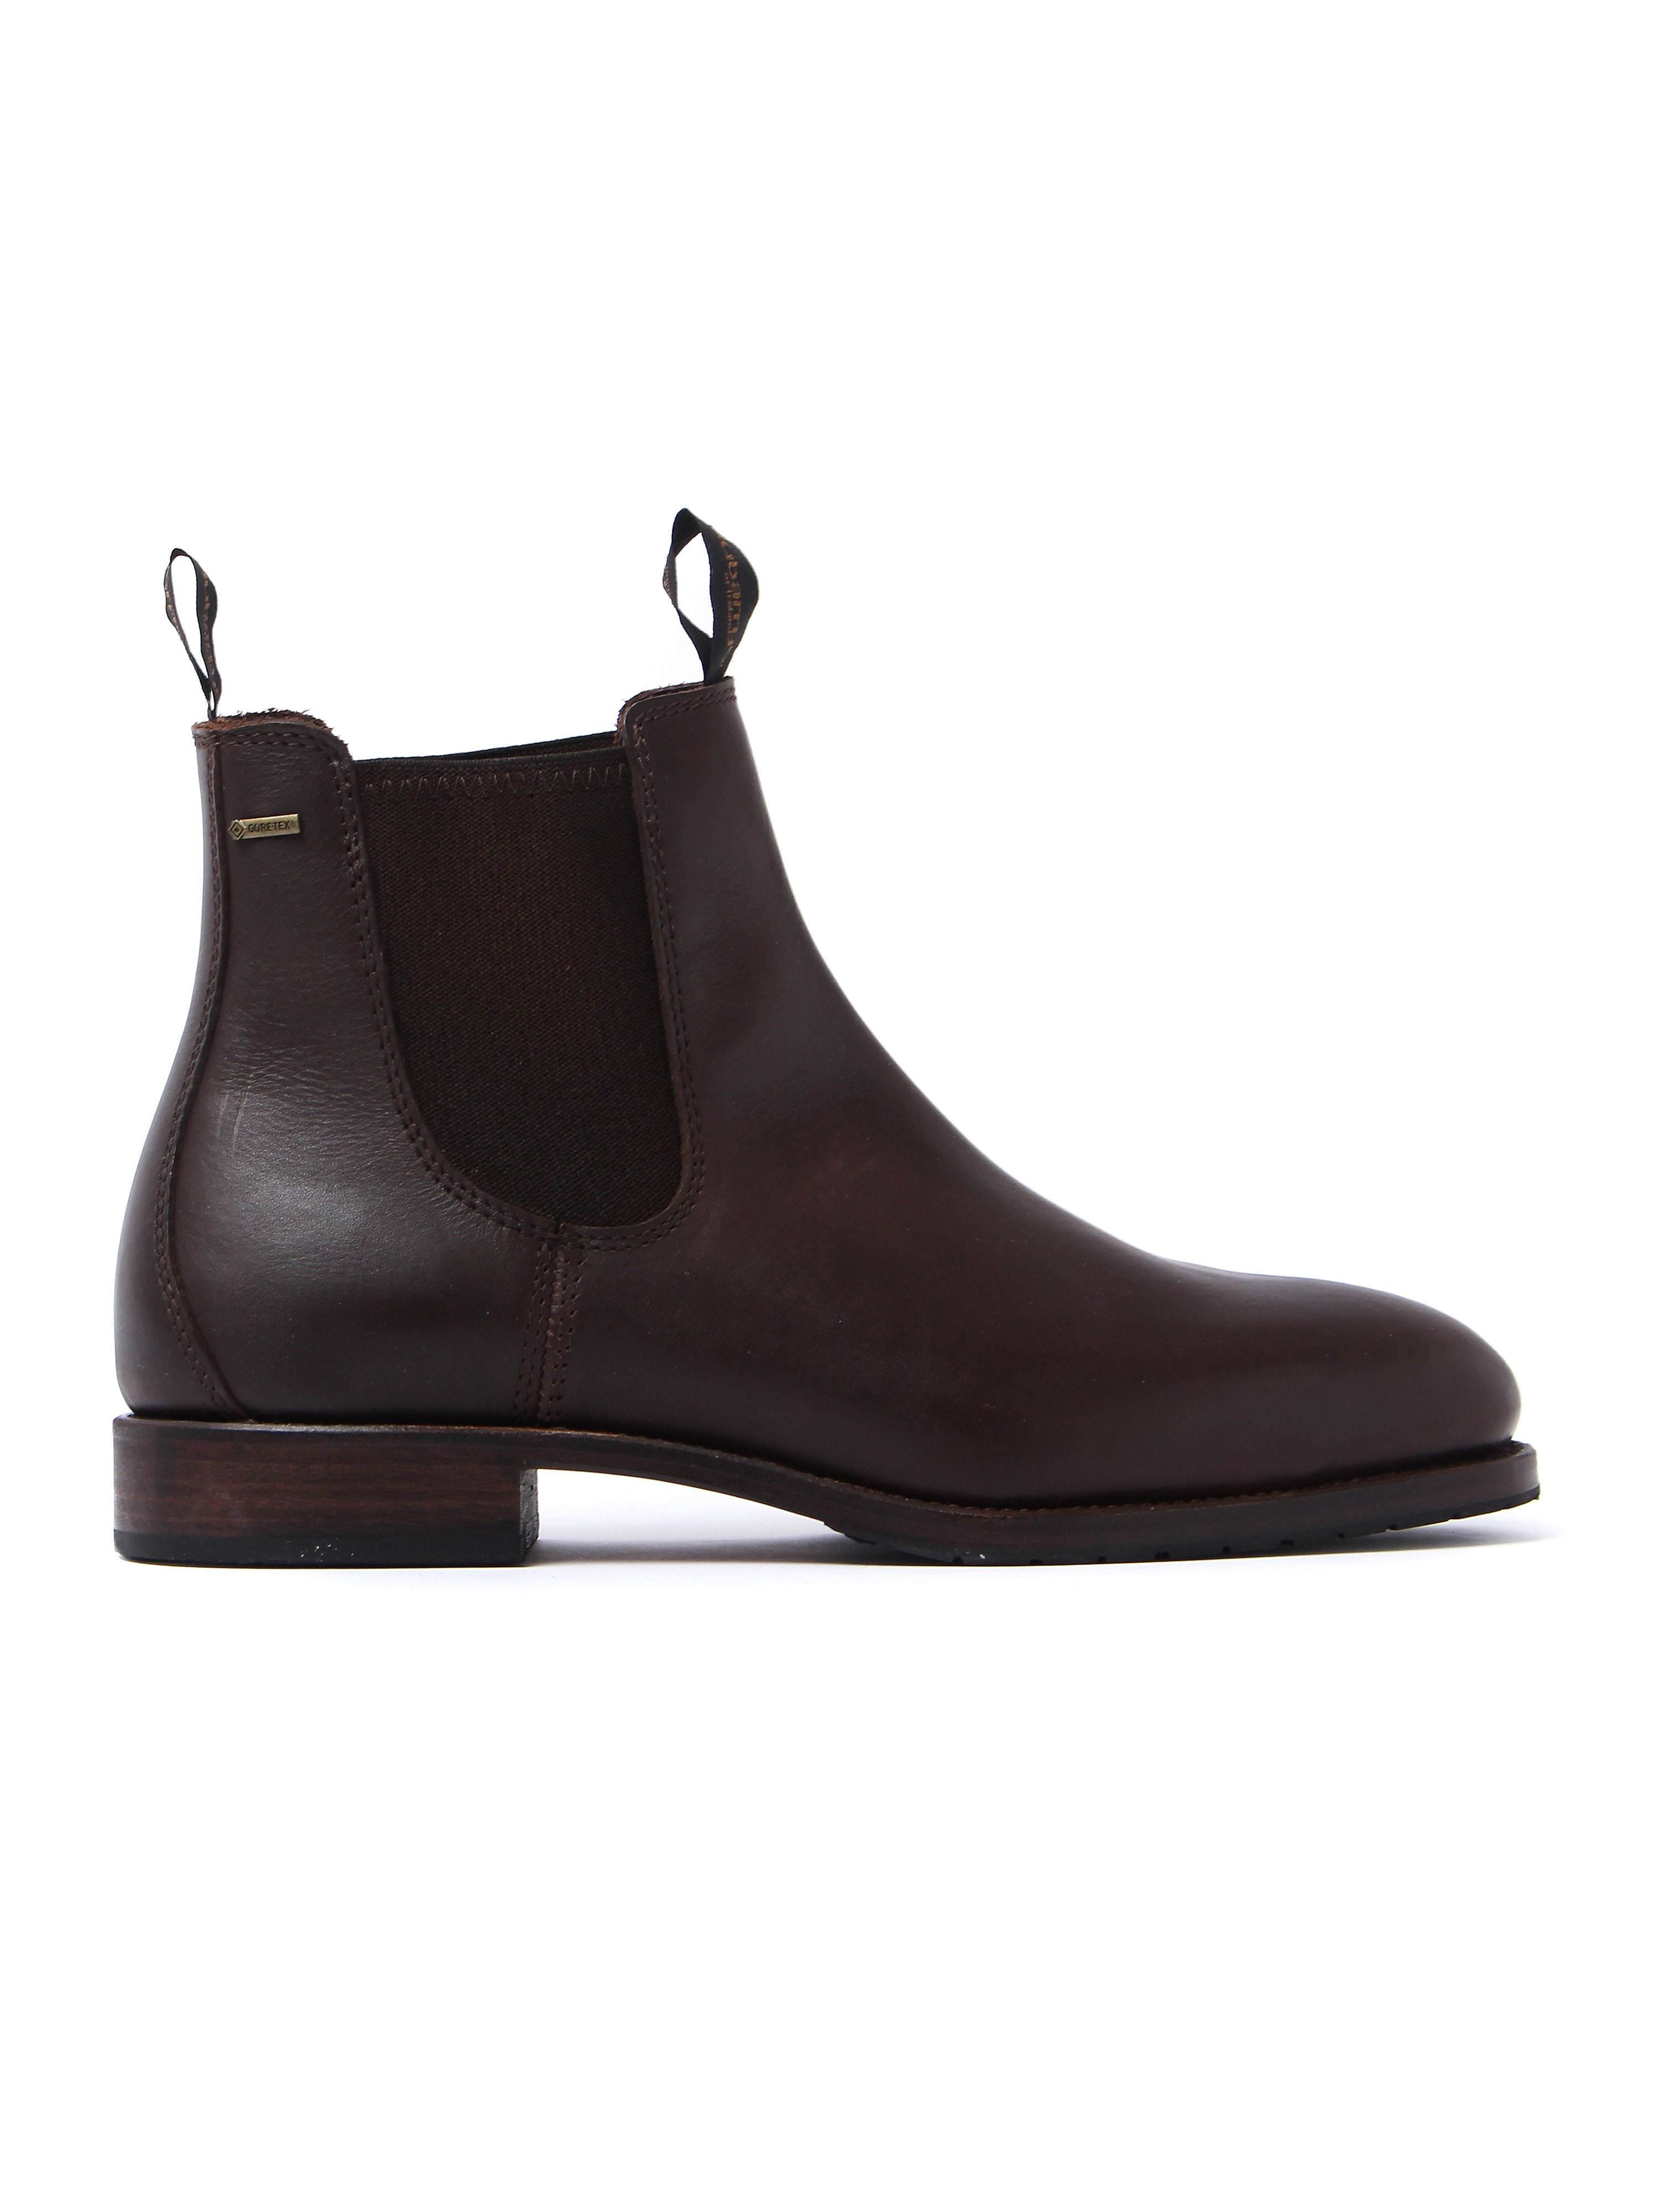 Dubarry Men's Kerry Leather Chelsea Boots - Mahogany